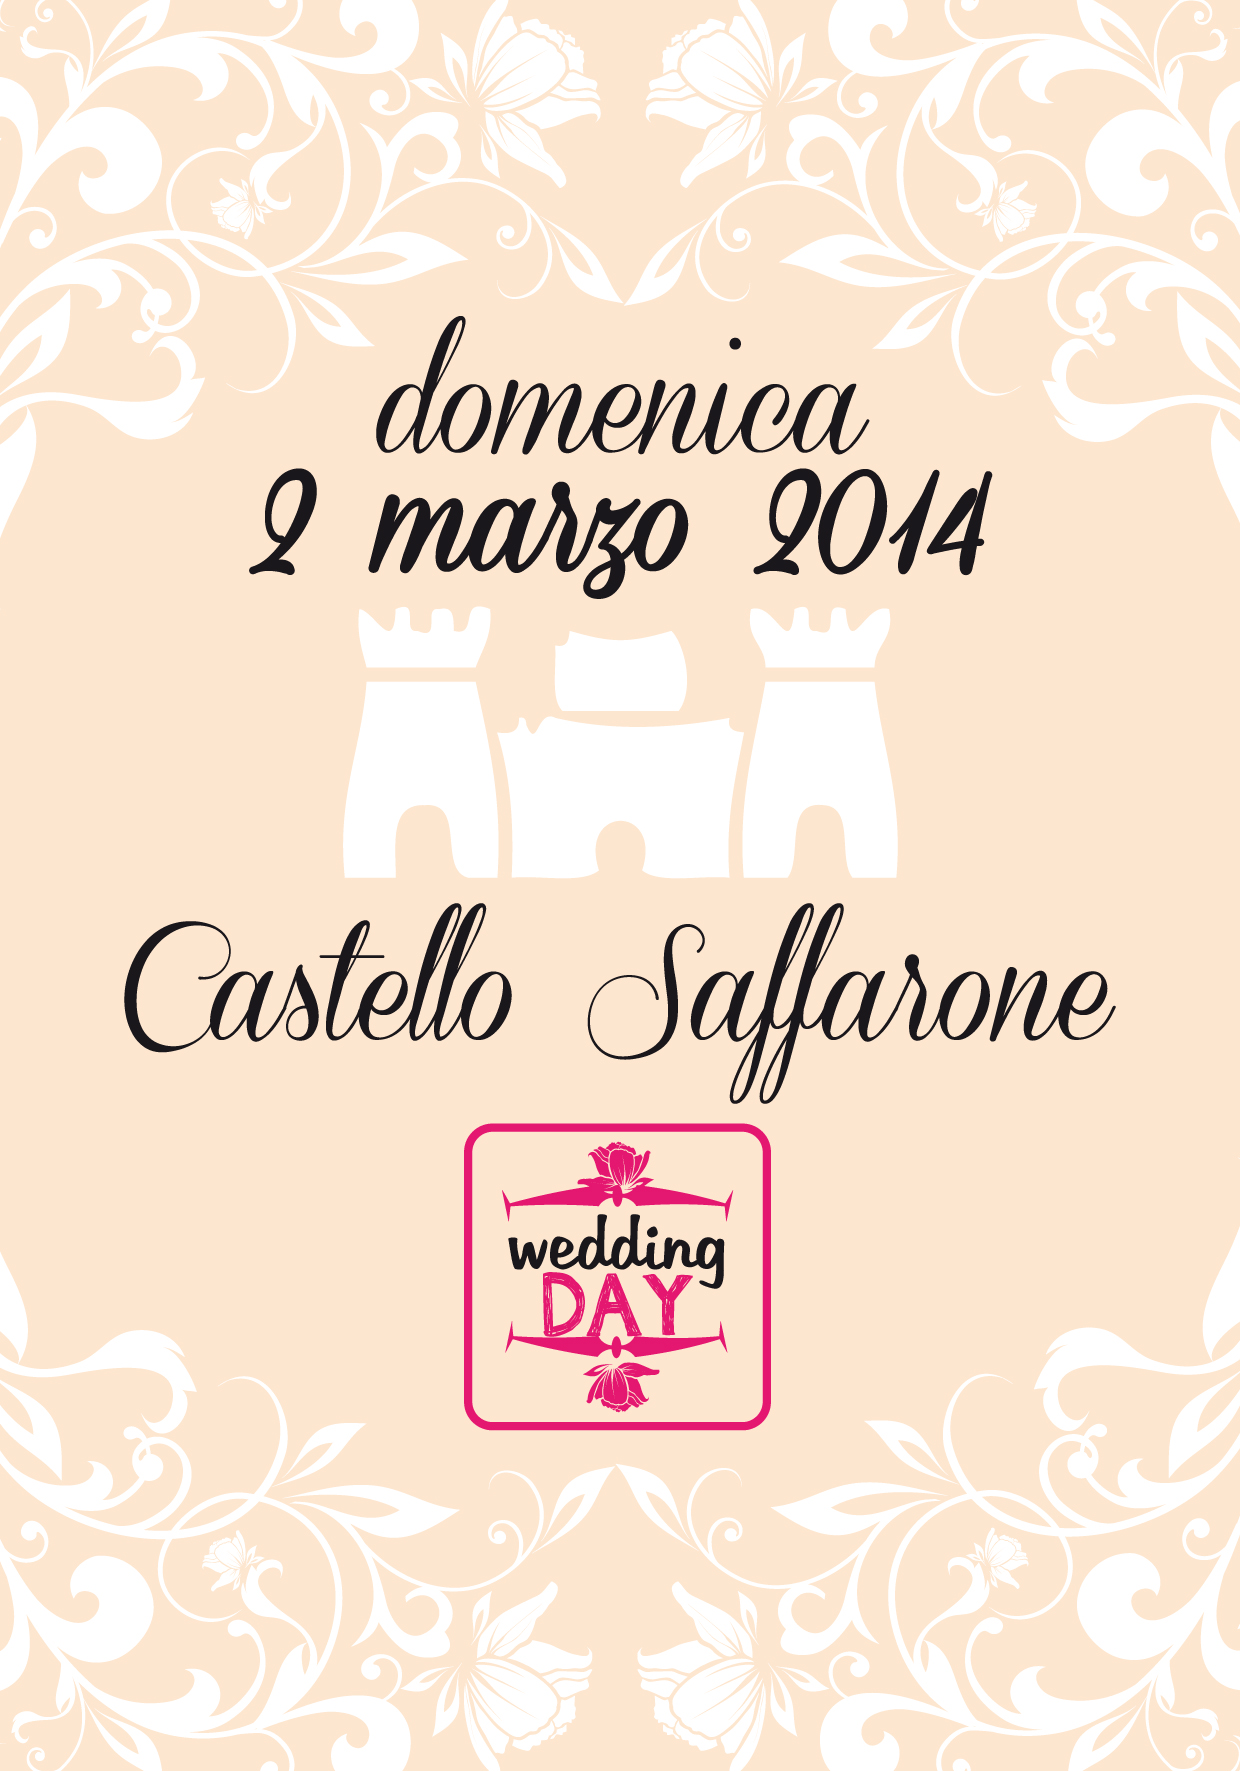 wedding-day-castello-castello-di-saffarone